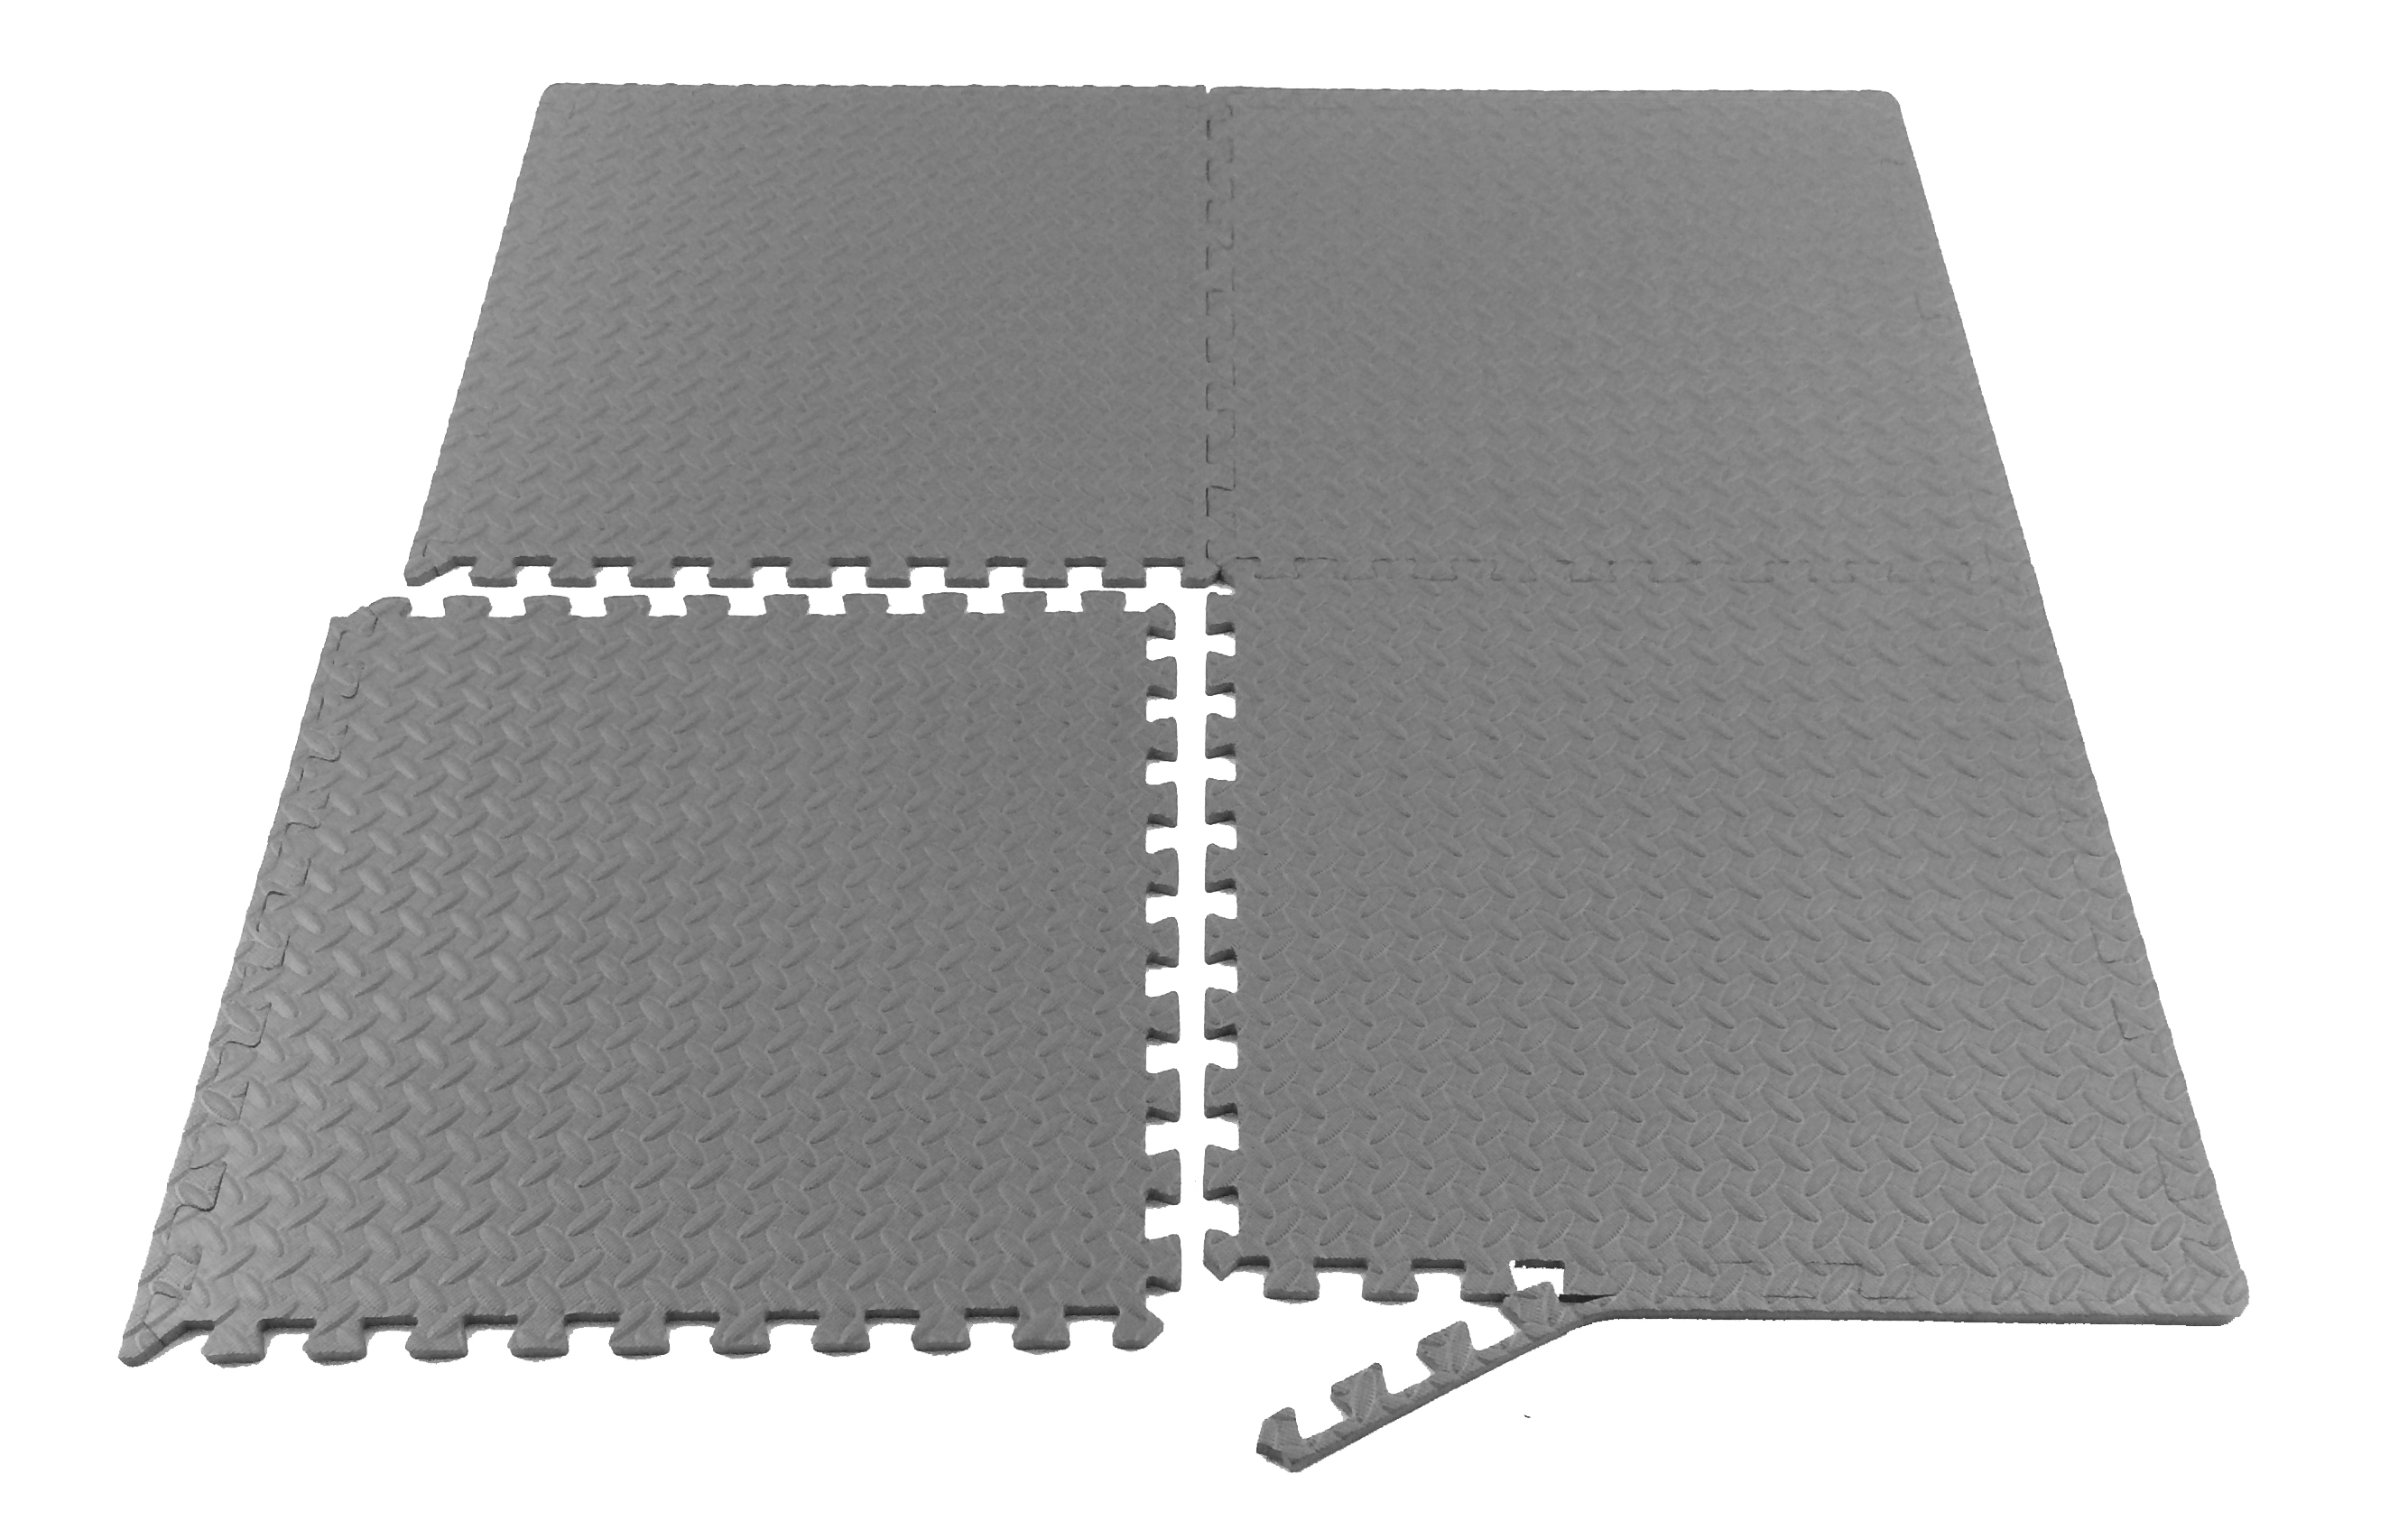 Prosource puzzle exercise mat eva foam interlocking tiles grey picture 10 of 11 dailygadgetfo Image collections